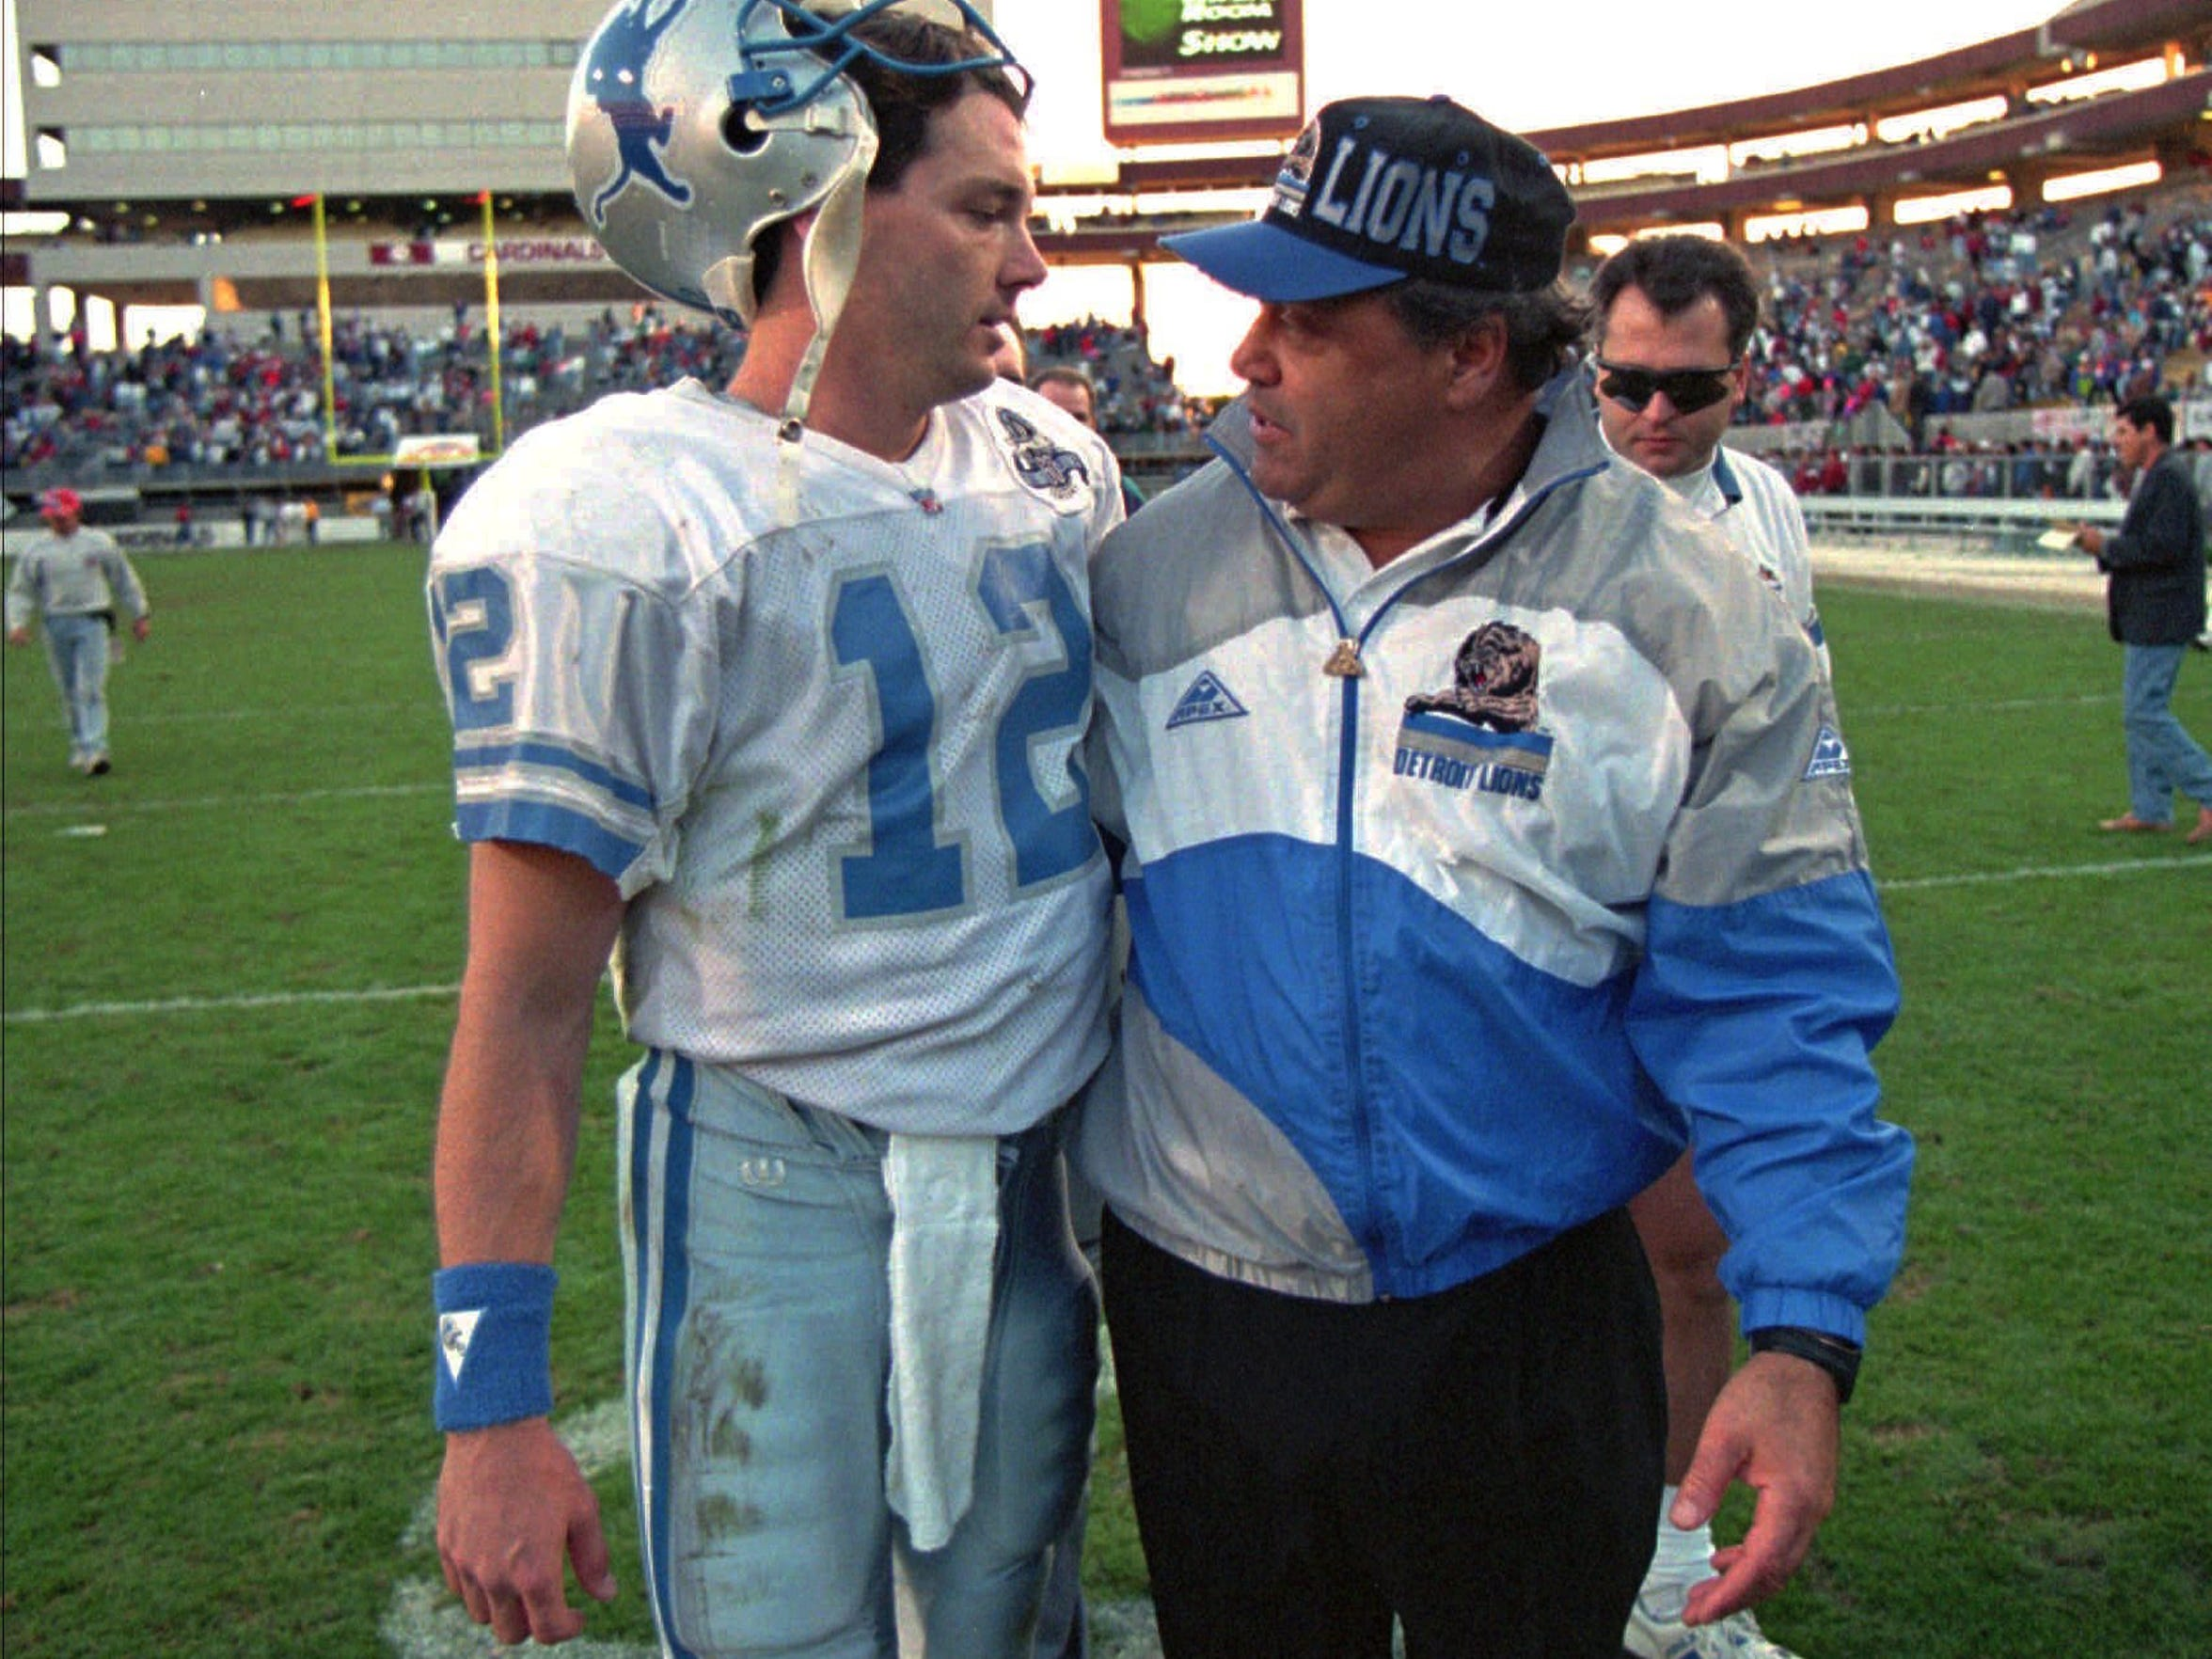 In a Detroit Free Press file photo, Lions' coach Wayne Fontes hugged his new QB Erik Kramer as they walked off the field after their 21-14 win over Phoenix.